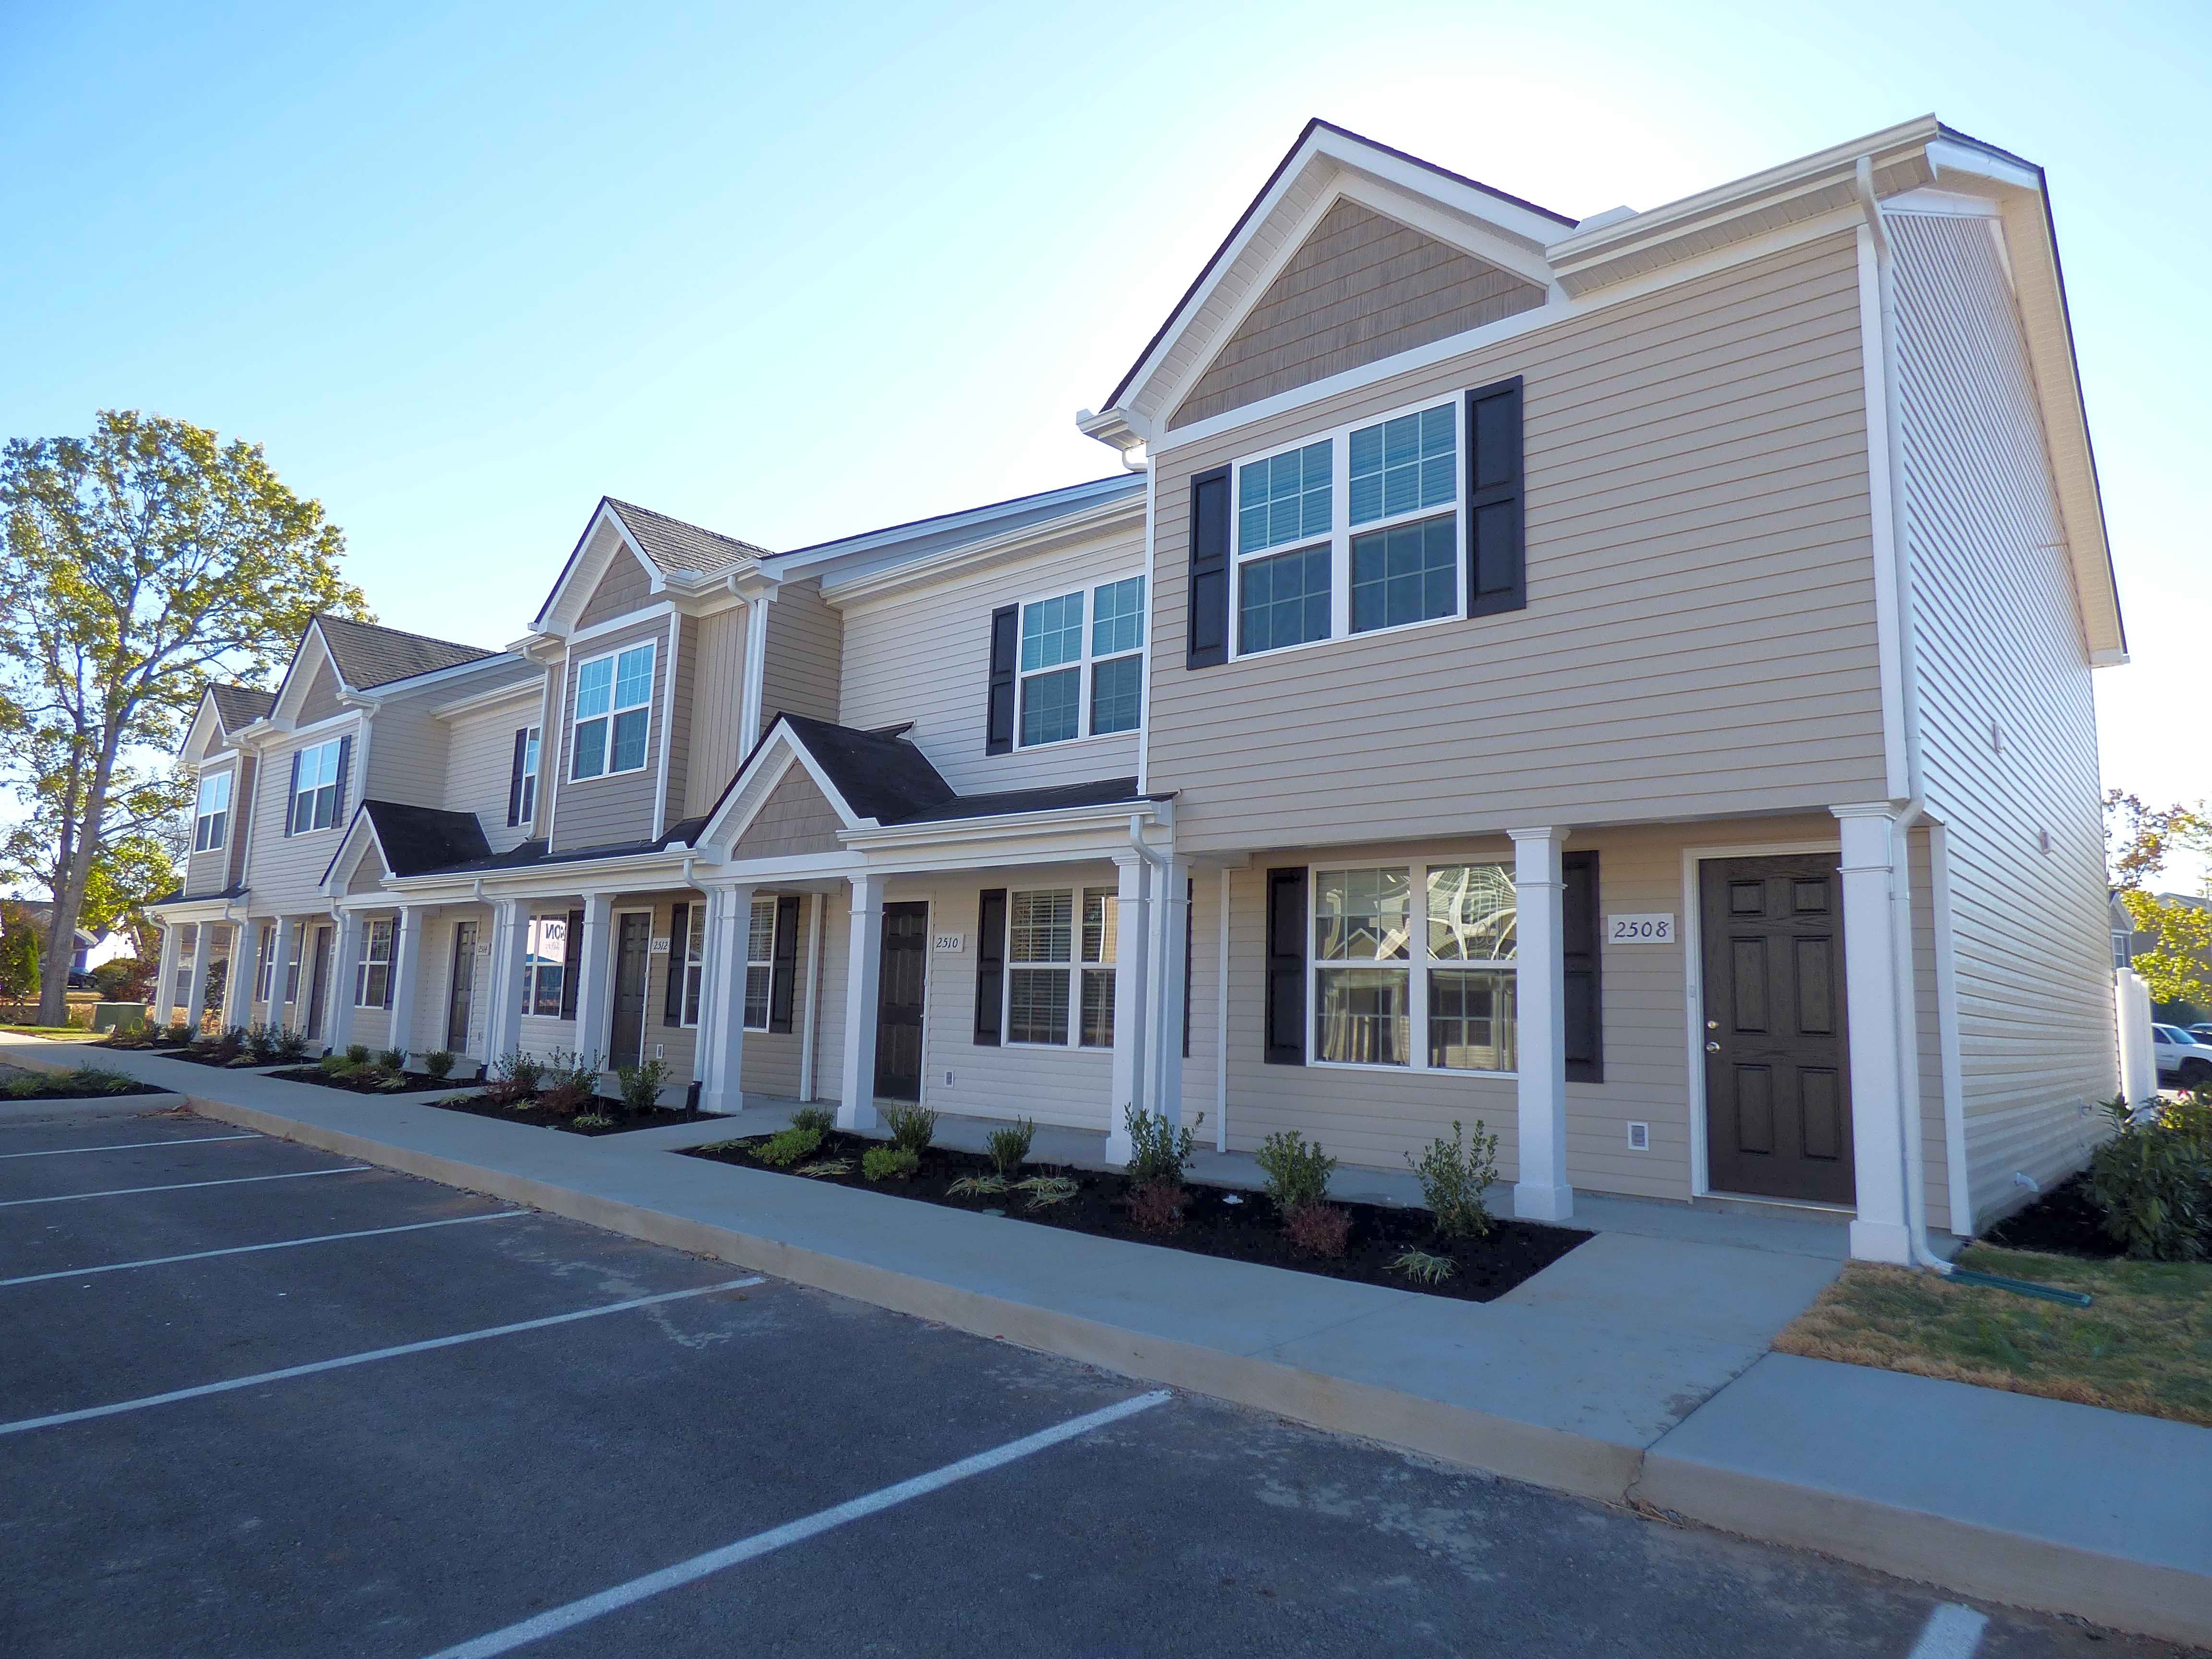 tennessee condos for rent in tennessee condominiums tn condo rentals